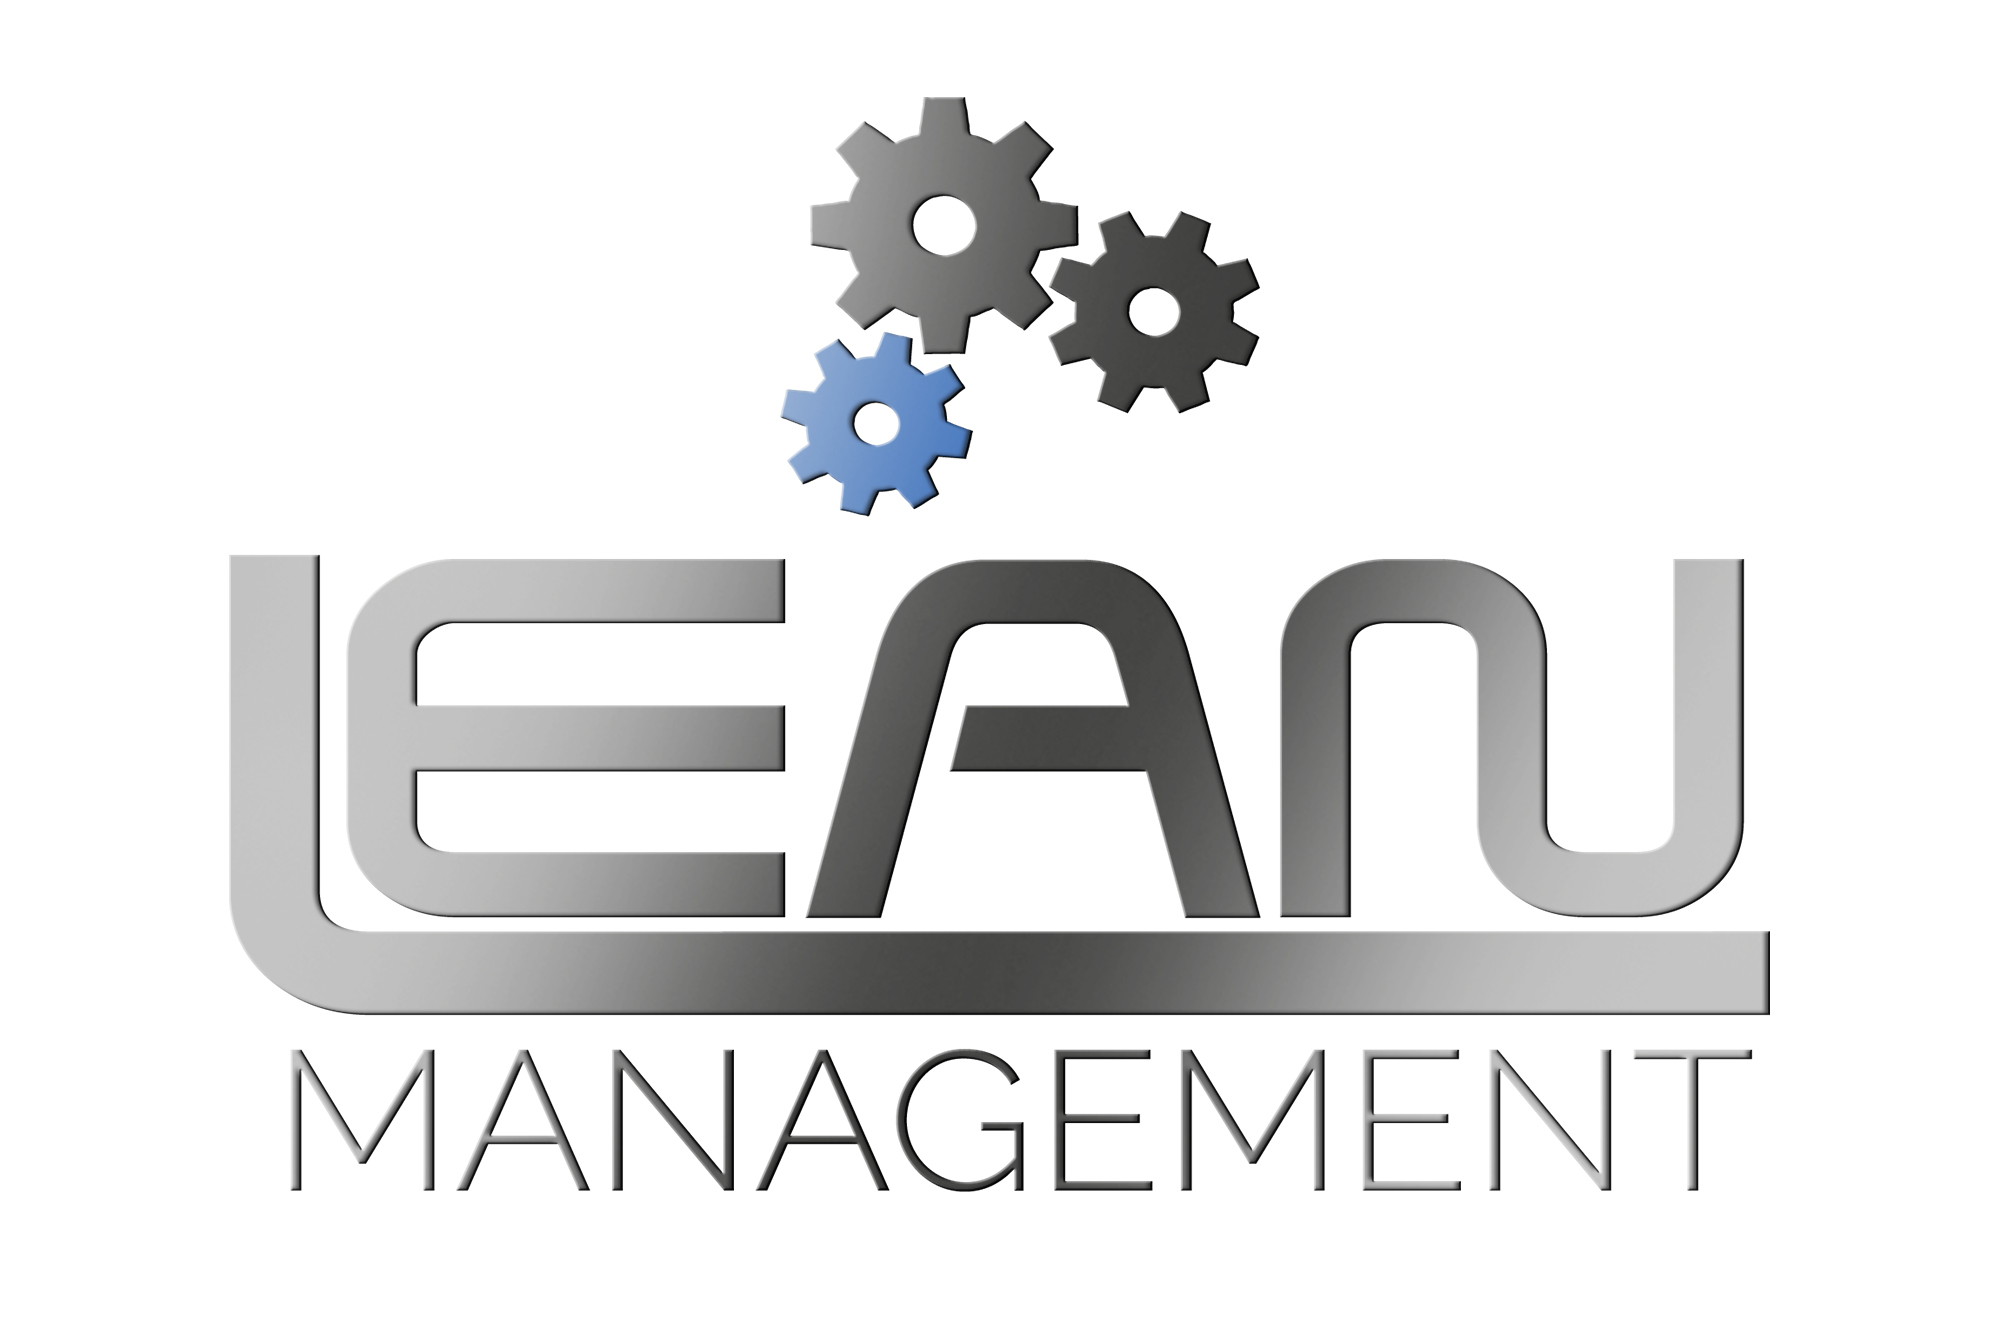 Lean Management 2017